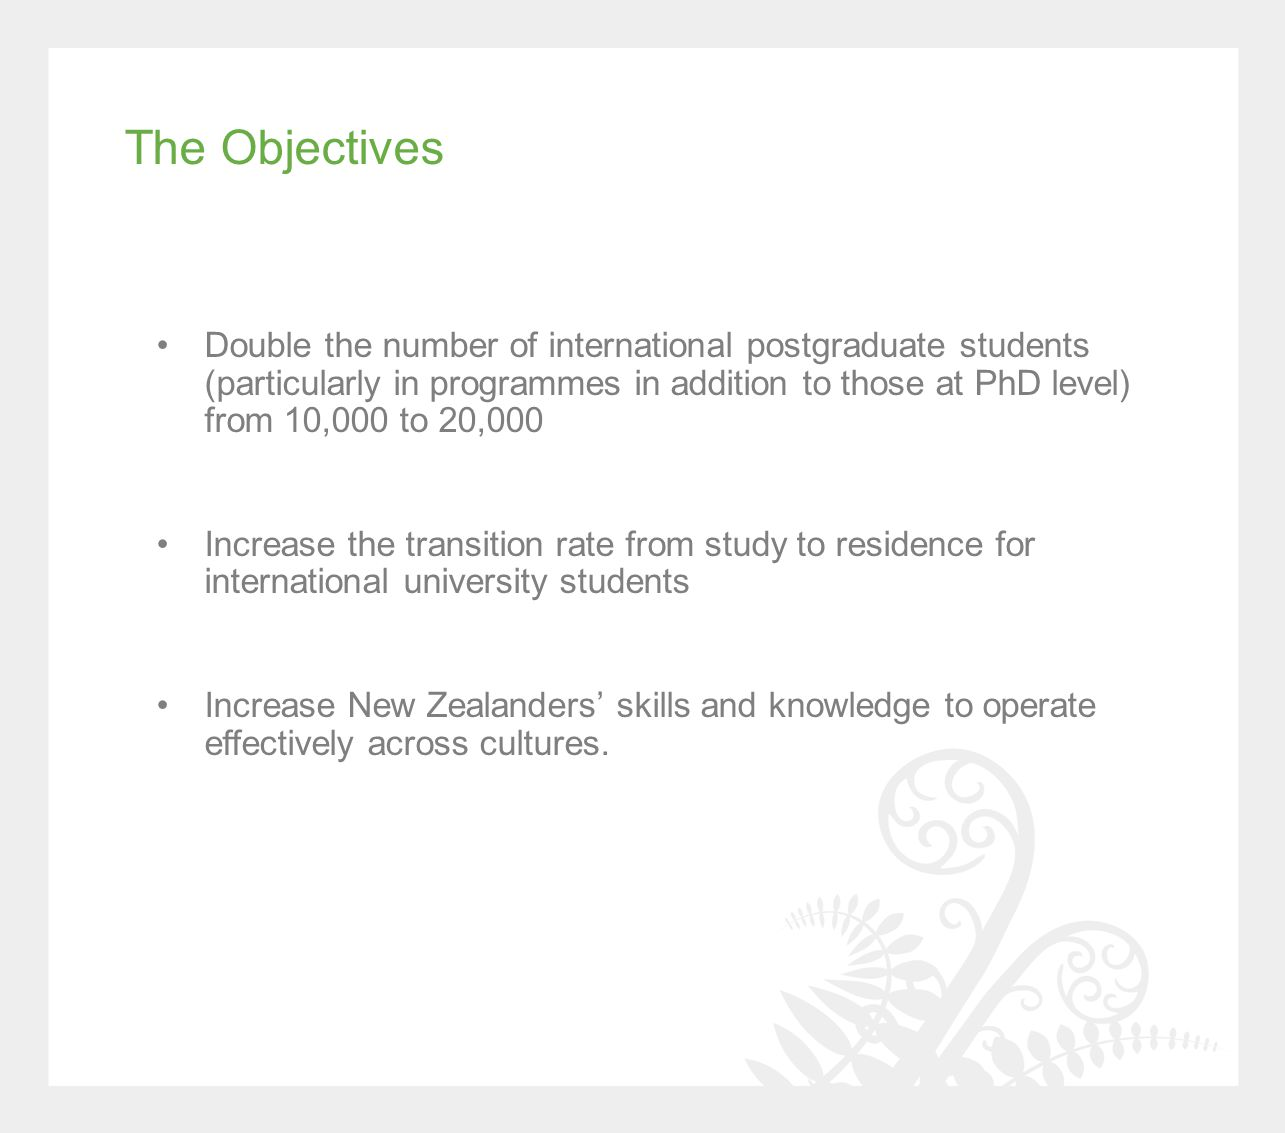 Double the number of international postgraduate students (particularly in programmes in addition to those at PhD level) from 10,000 to 20,000 Increase the transition rate from study to residence for international university students Increase New Zealanders' skills and knowledge to operate effectively across cultures.